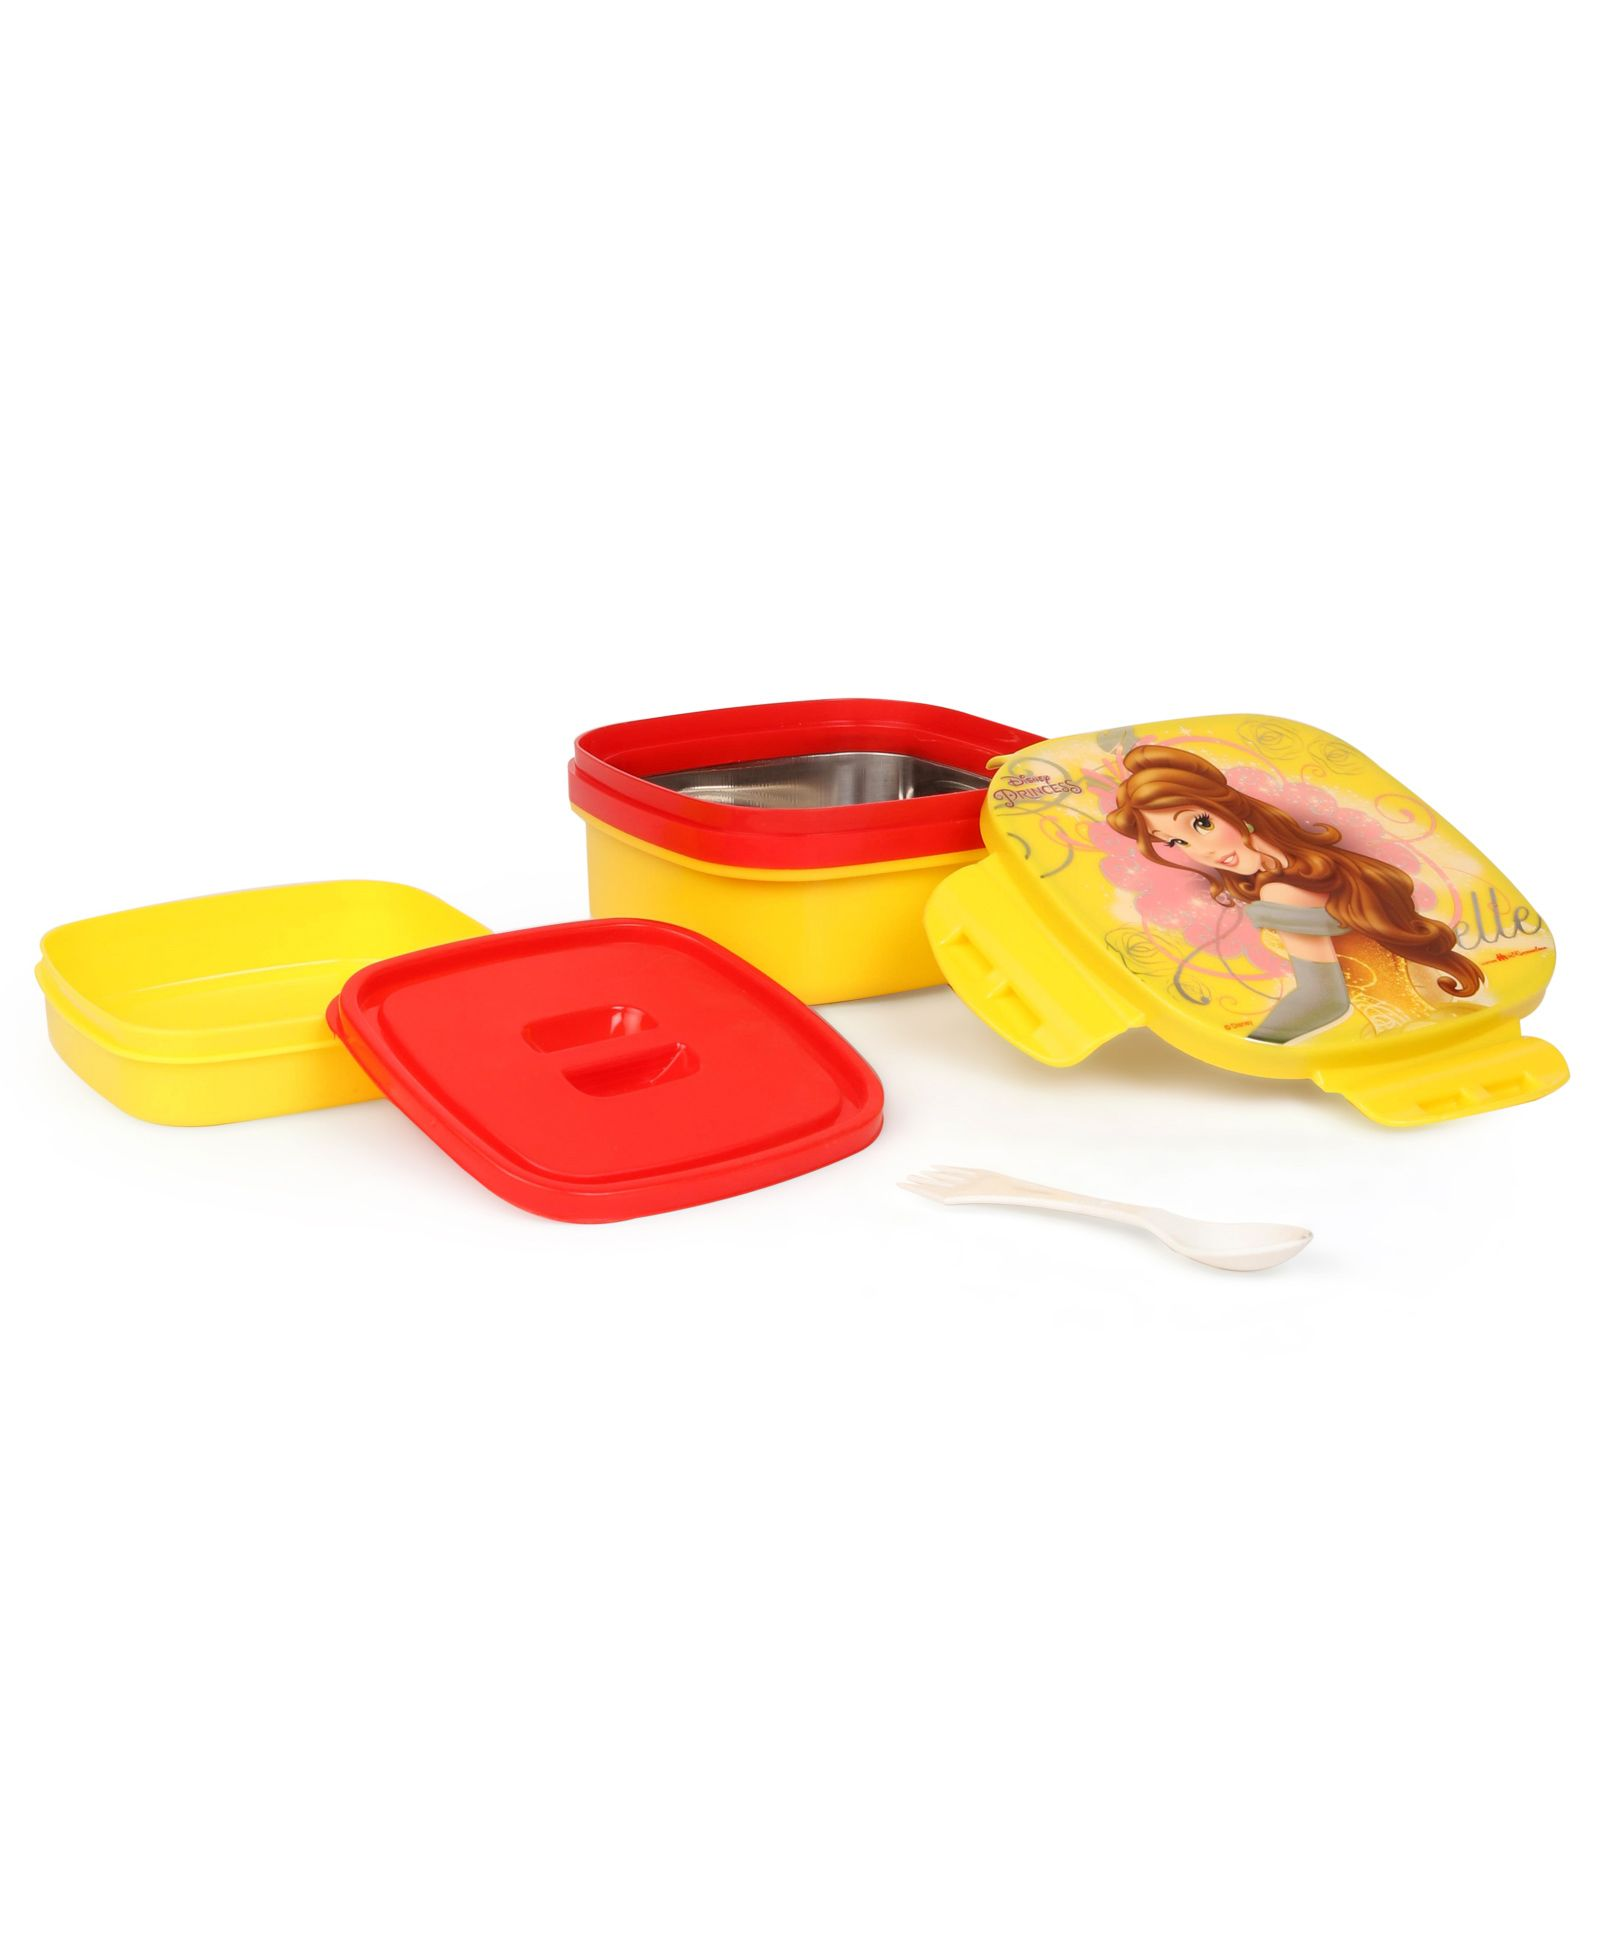 2195111a6a6 Disney Princess Belle Insulated Lunch Box With Stainless Steel Inside -  Yellow   Red